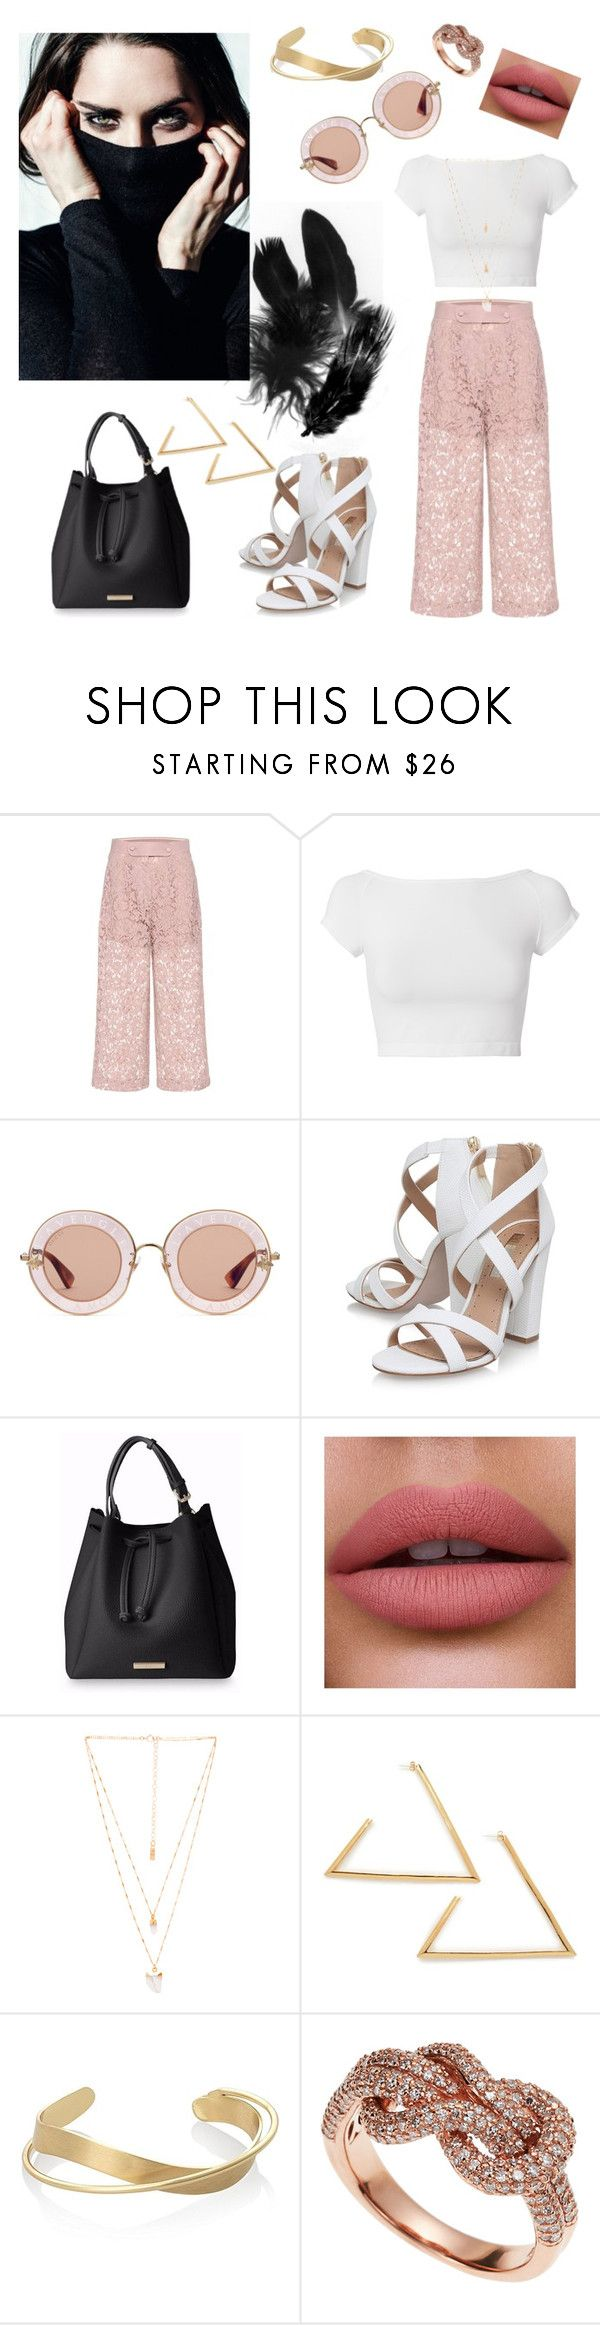 """""""Contrast"""" by katrinanilles ❤ liked on Polyvore featuring Valentino, Helmut Lang, Gucci, Miss KG, Natalie B and Effy Jewelry"""